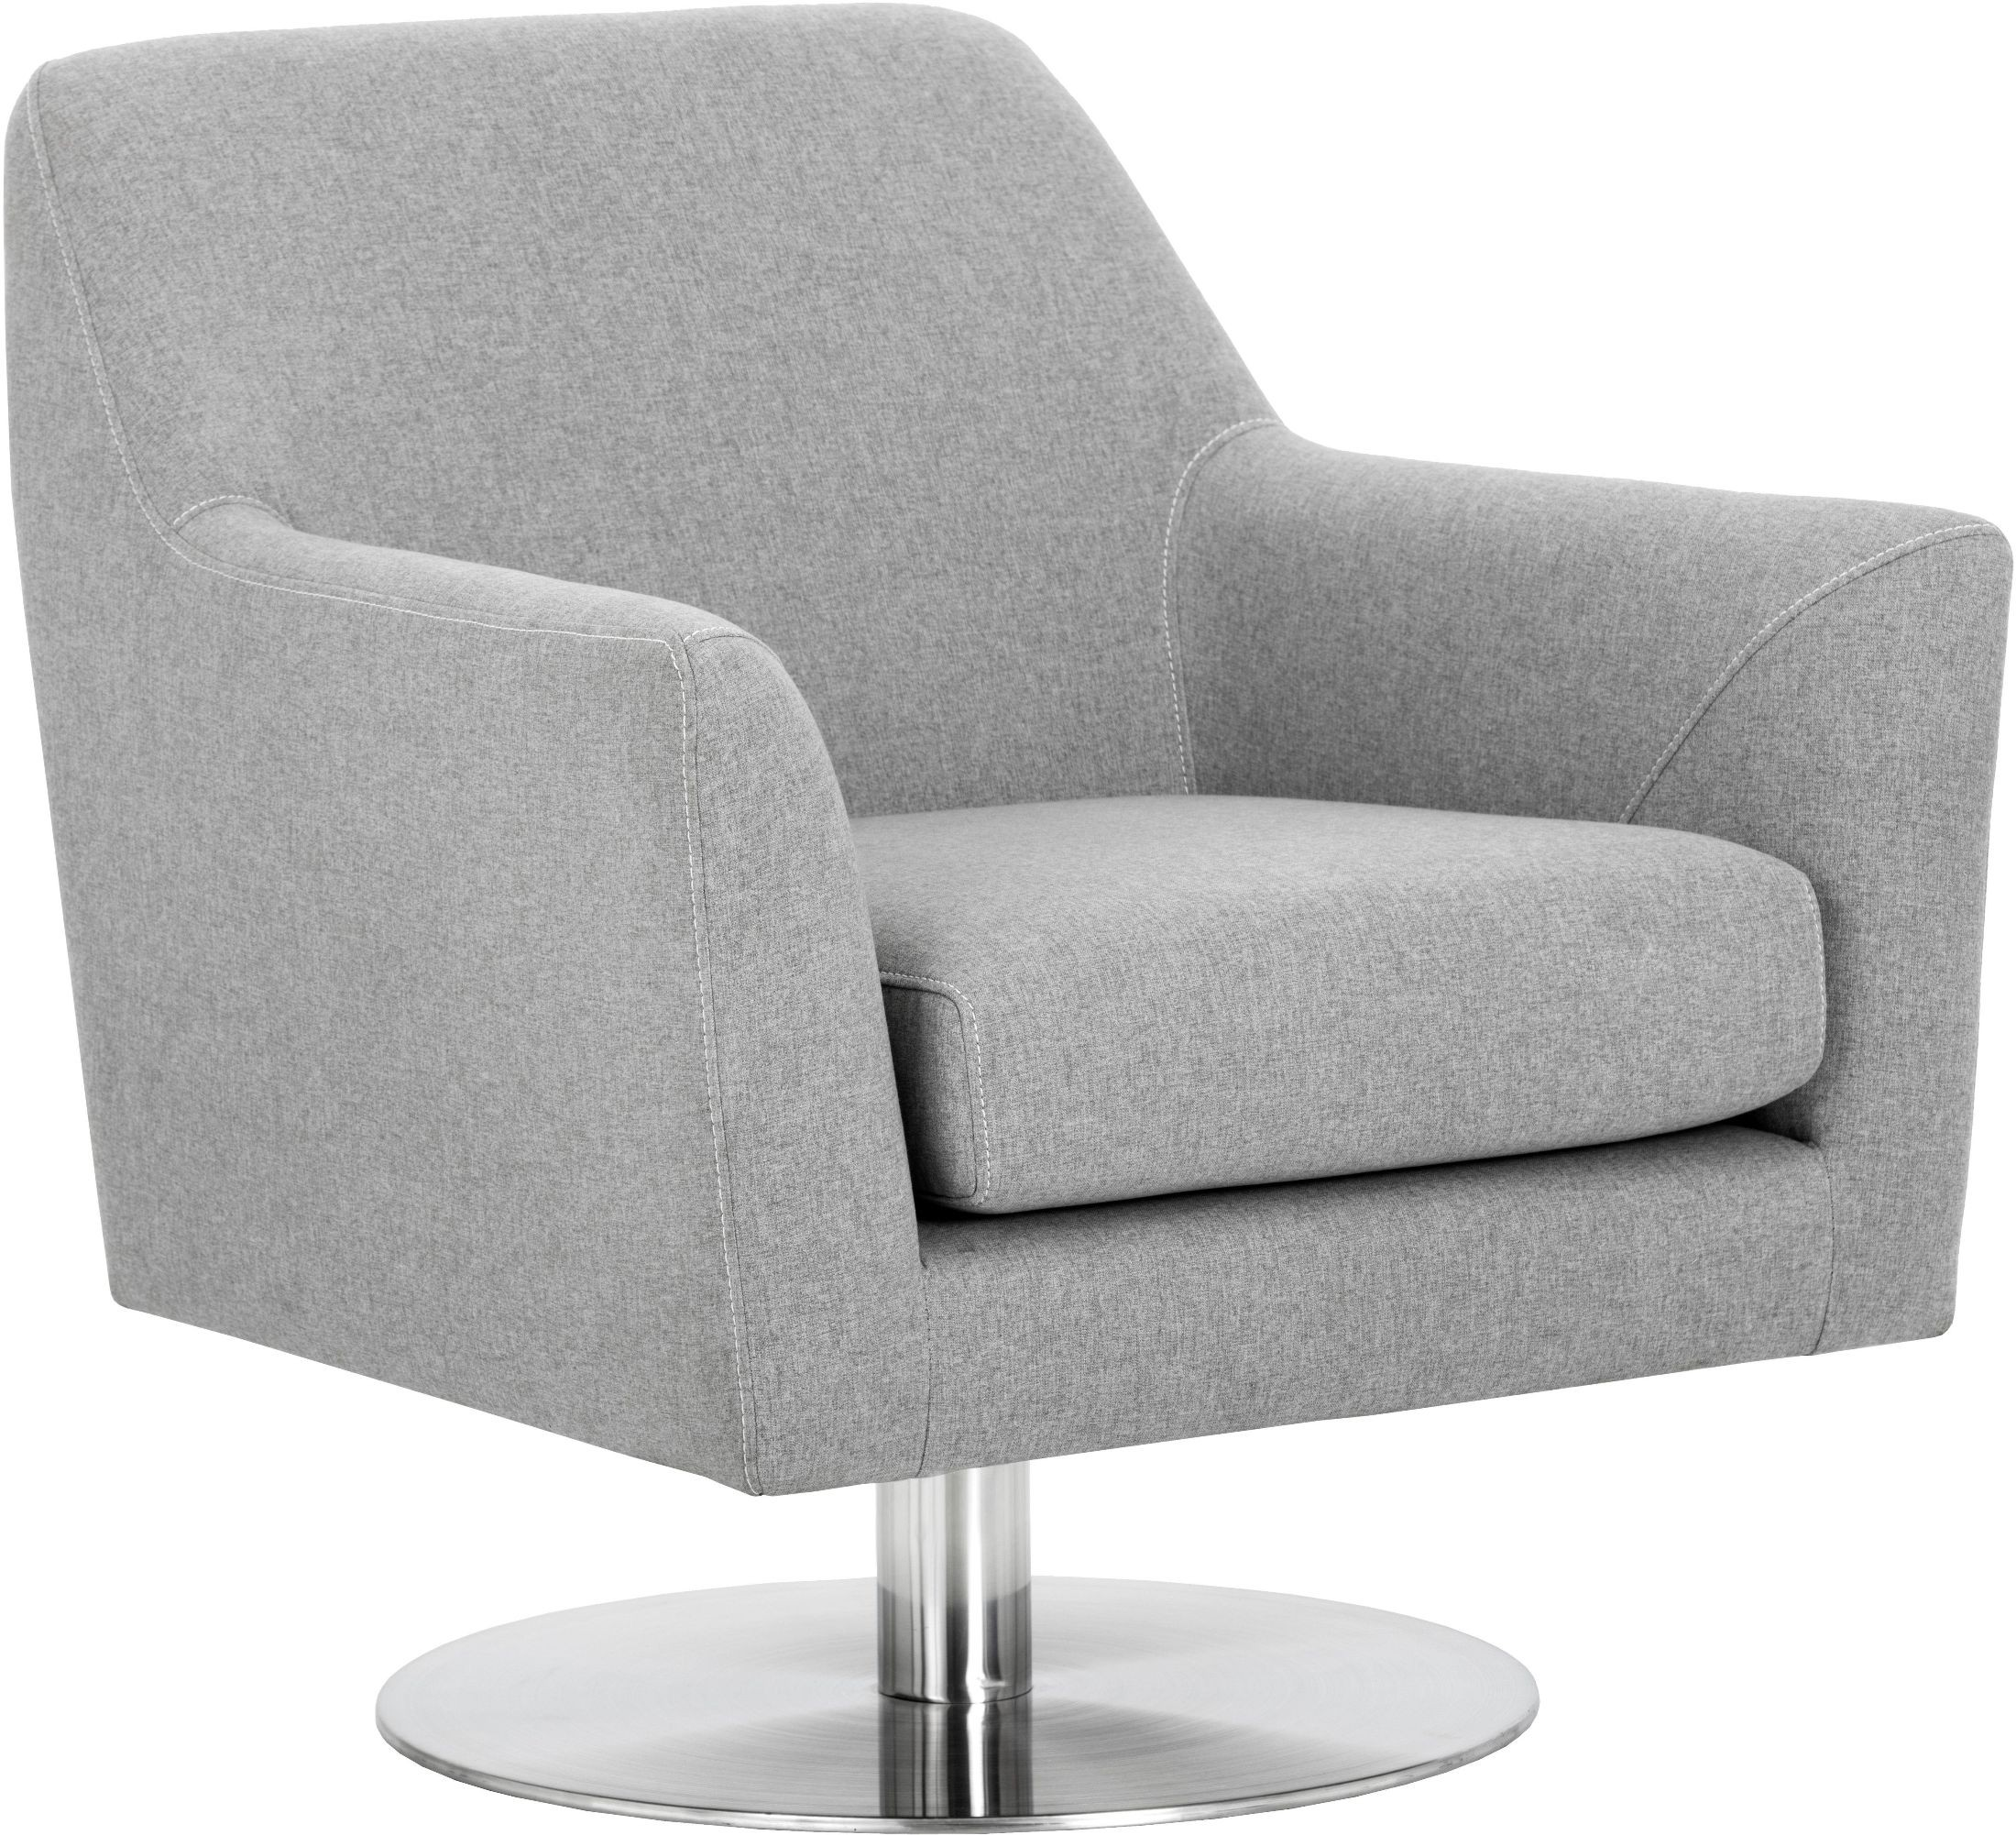 Grey Upholstered Chair Doris Monday Grey Upholstered Swivel Chair From Sunpan